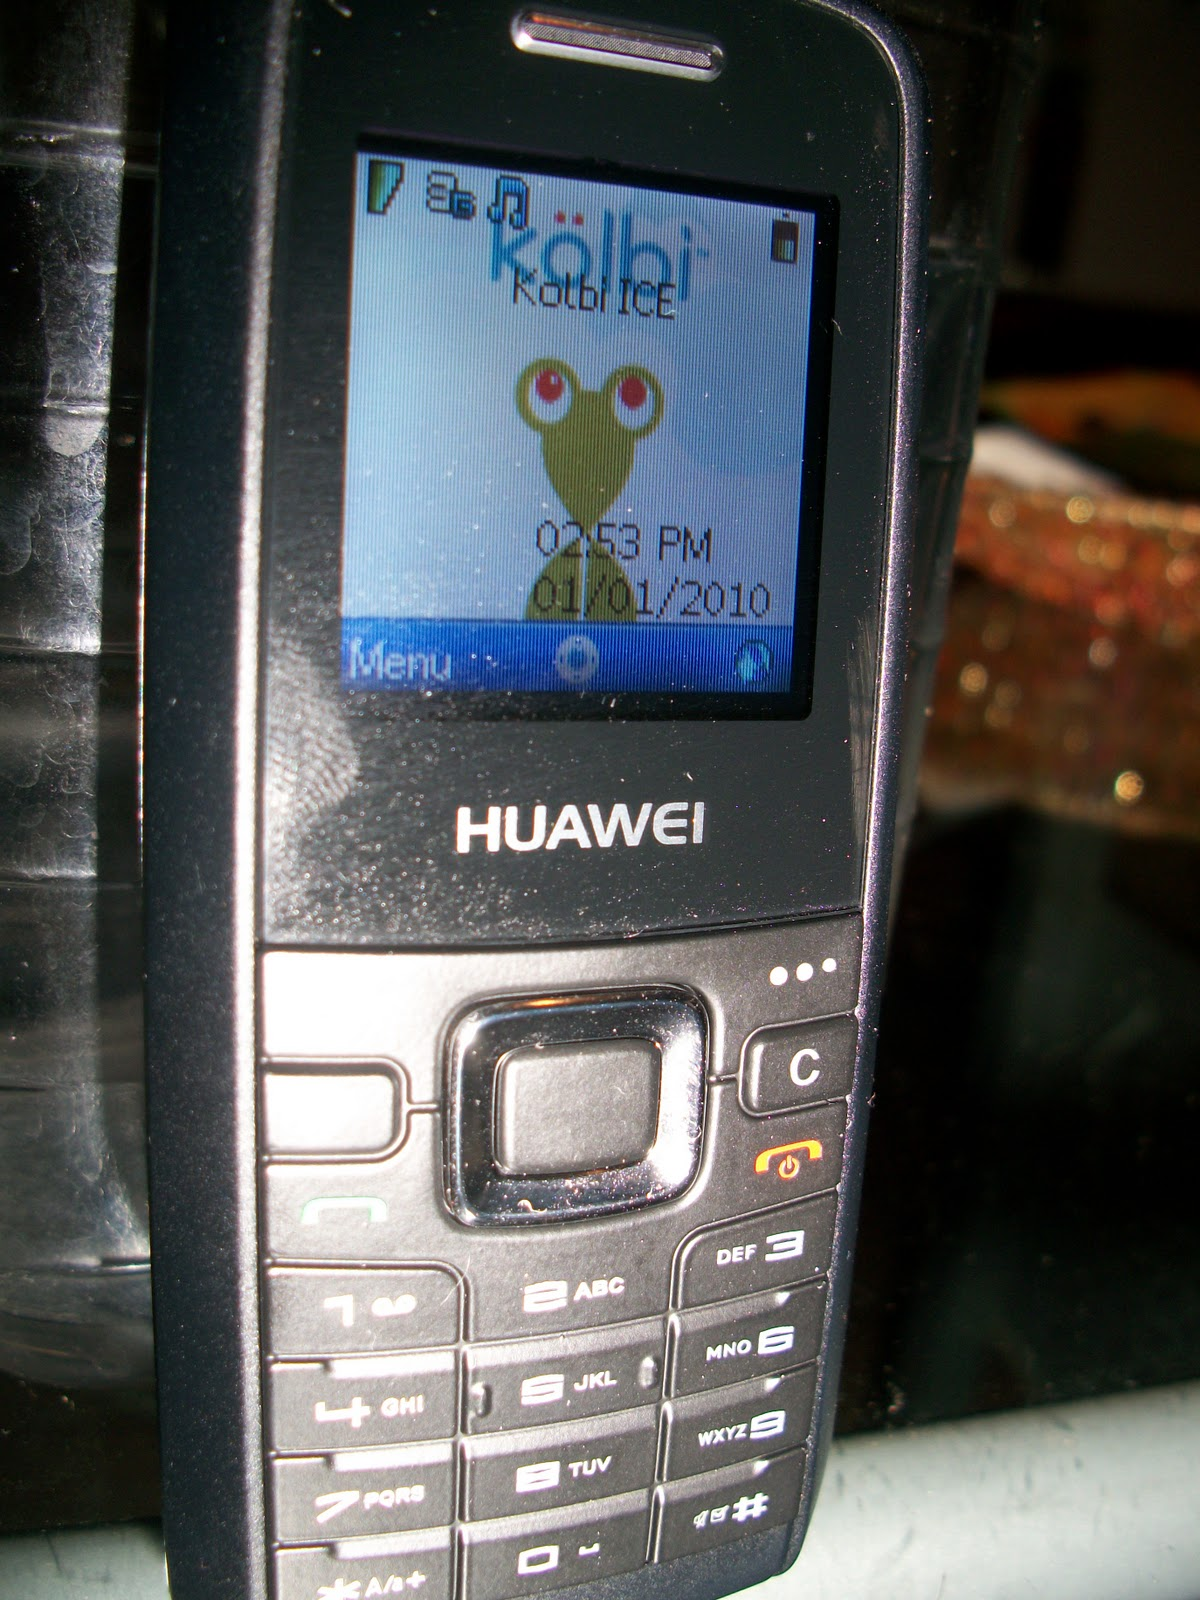 how to get internet access on huawai phones